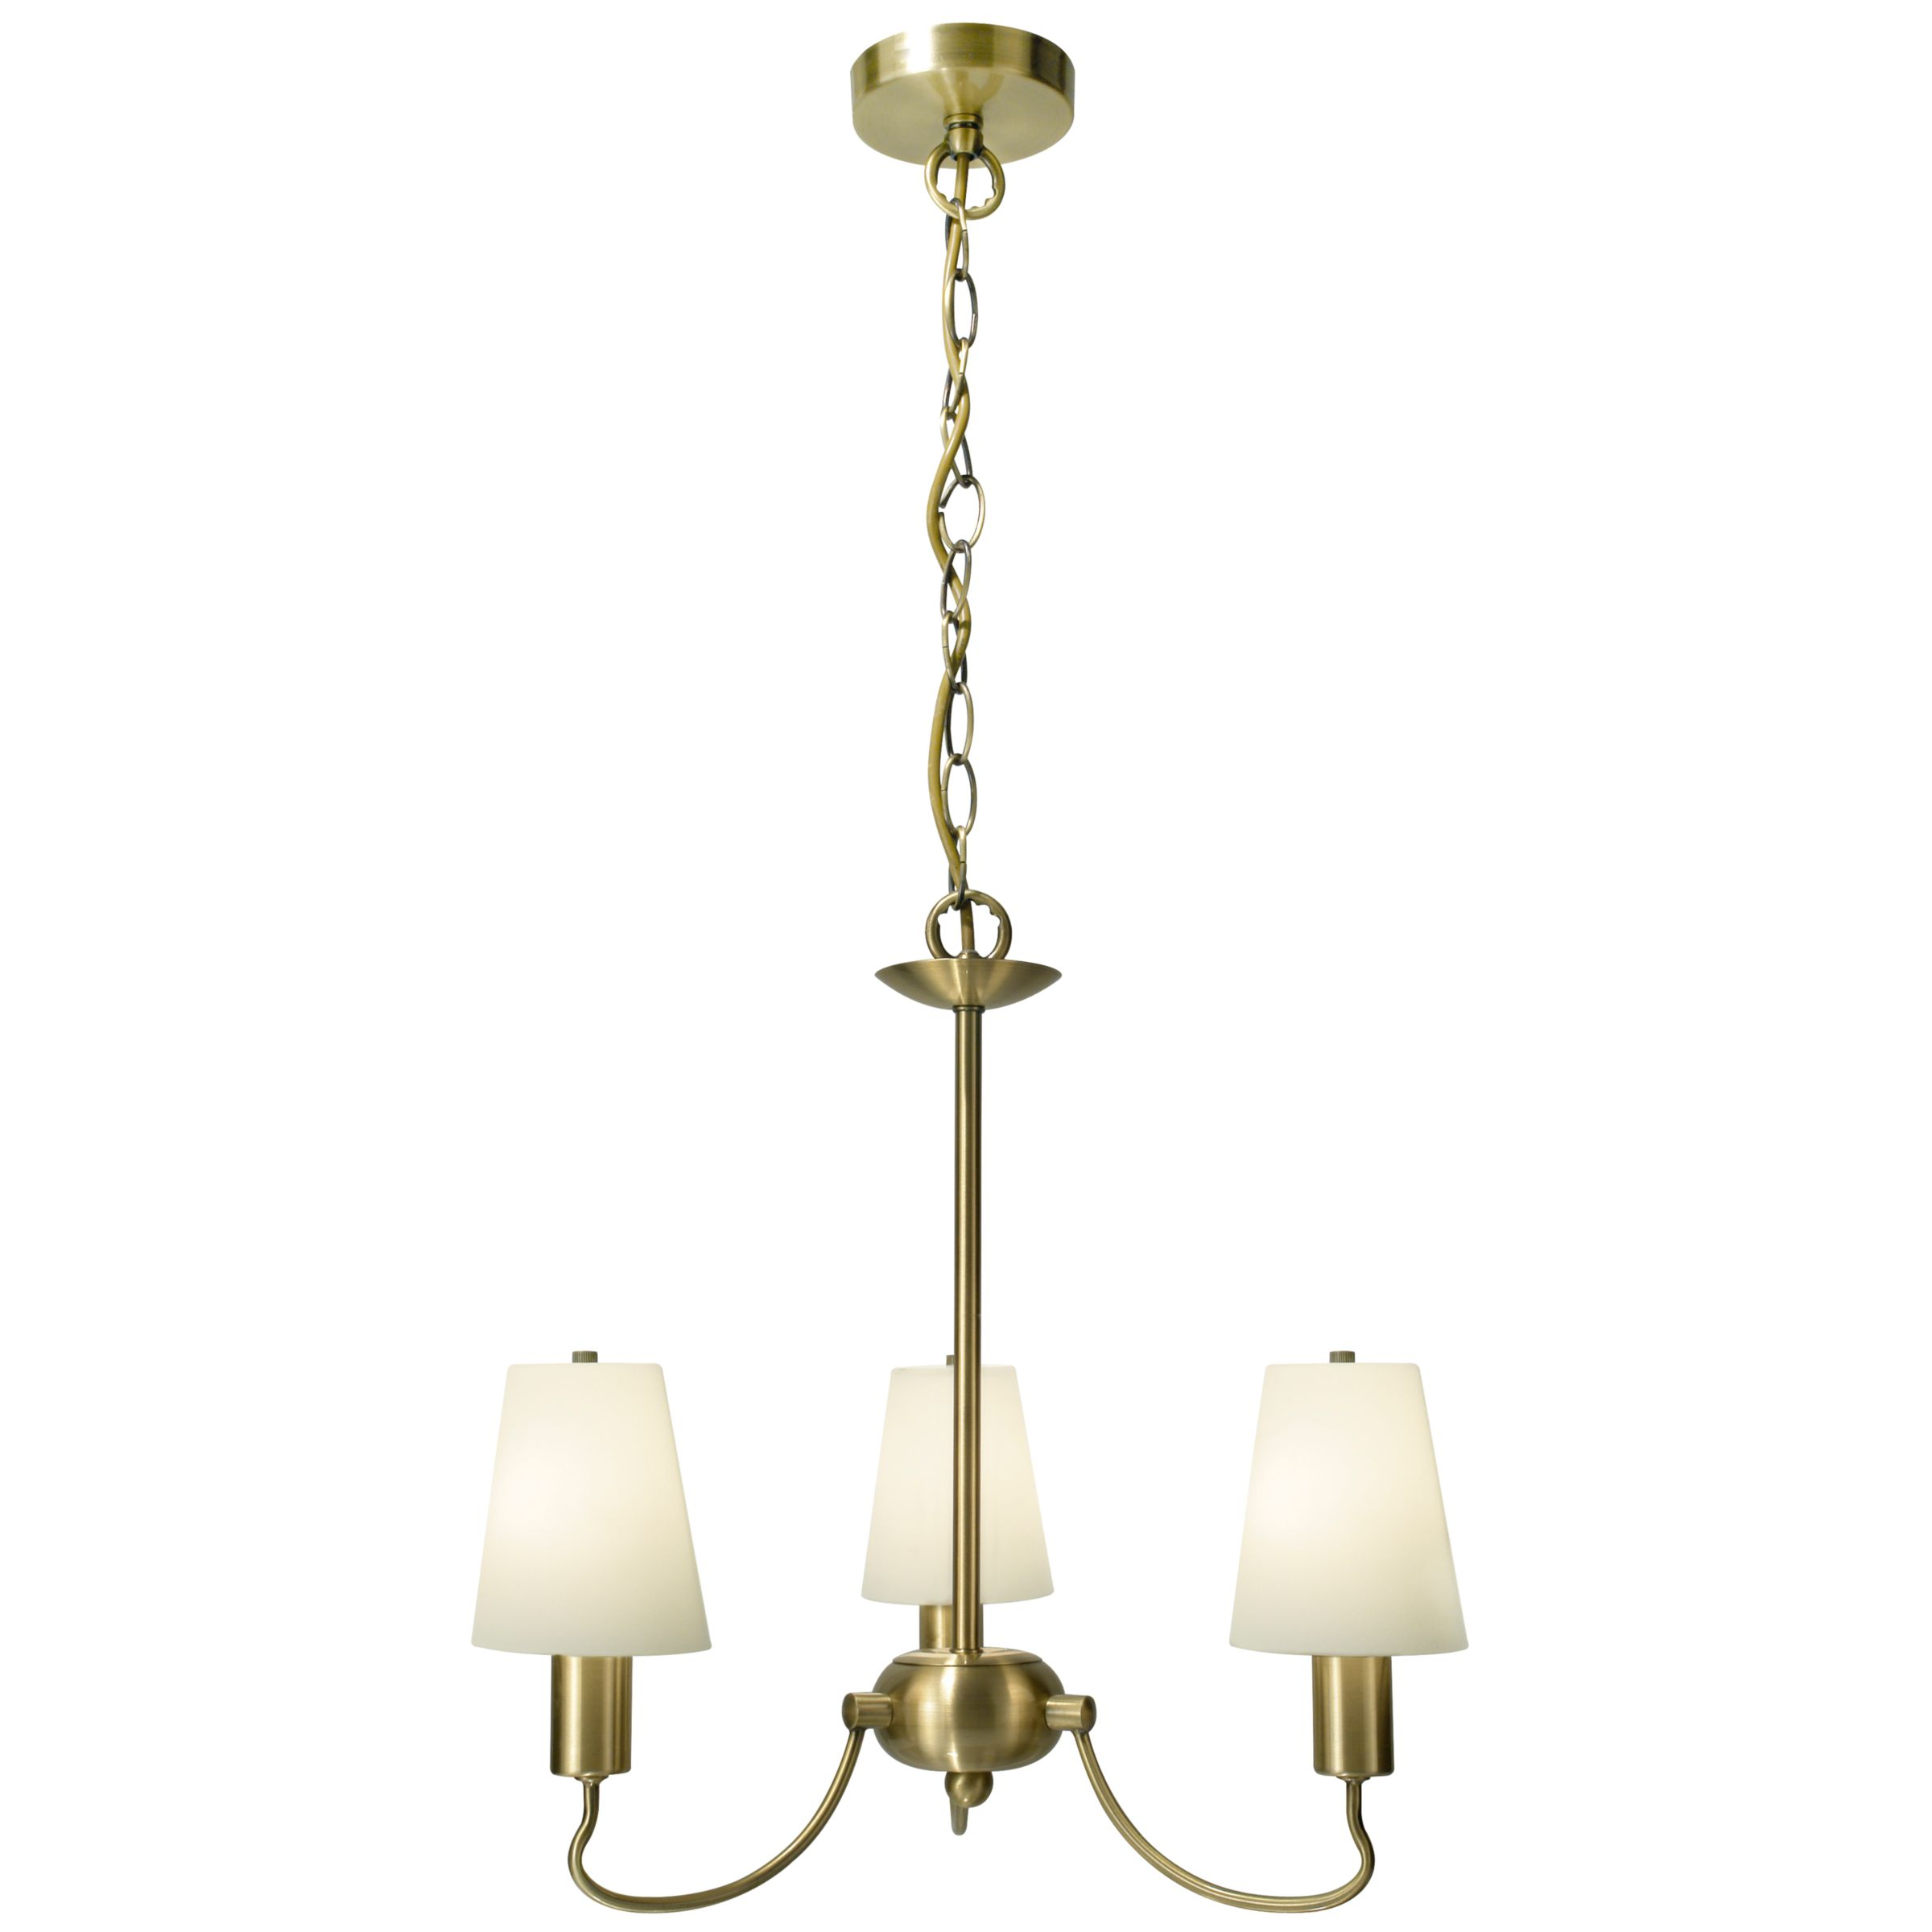 John Lewis White Ceiling Lights : John lewis greta ceiling light arm review compare